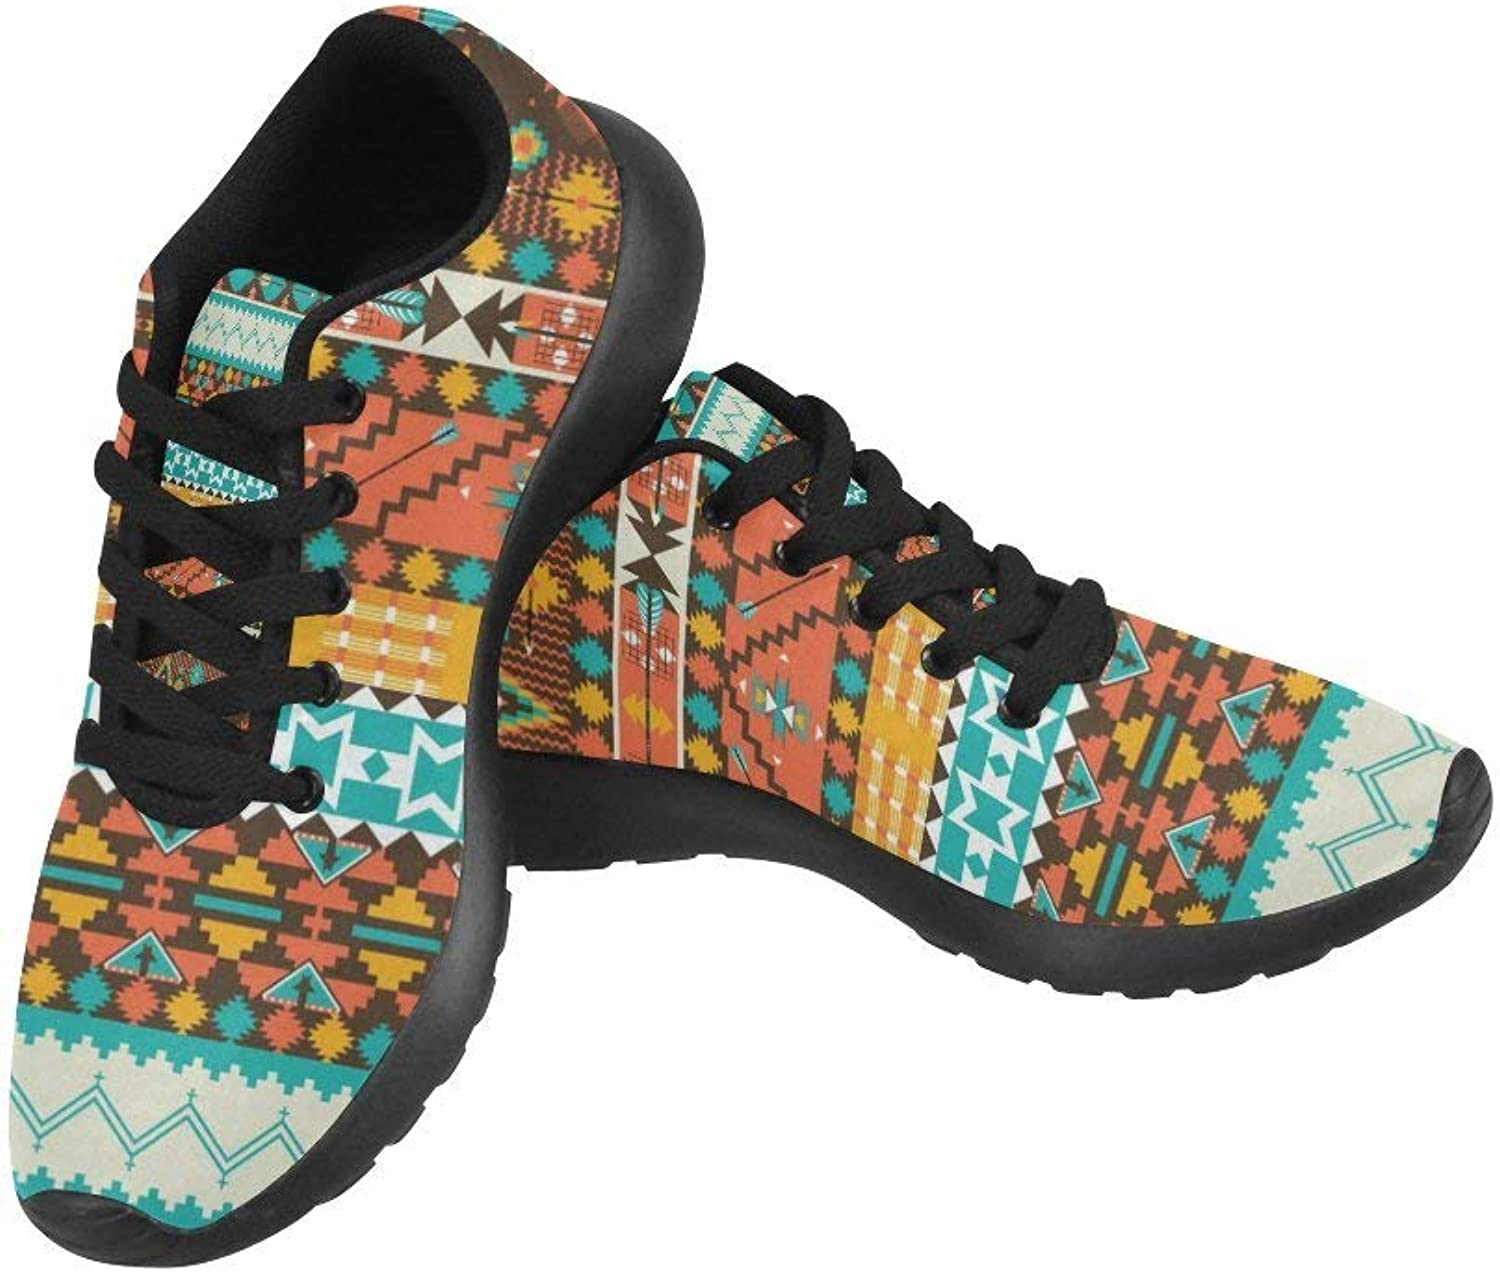 InterestPrint color Navajo Design Pattern Print on Women's Running shoes Casual Lightweight Athletic Sneakers US Size 6-15